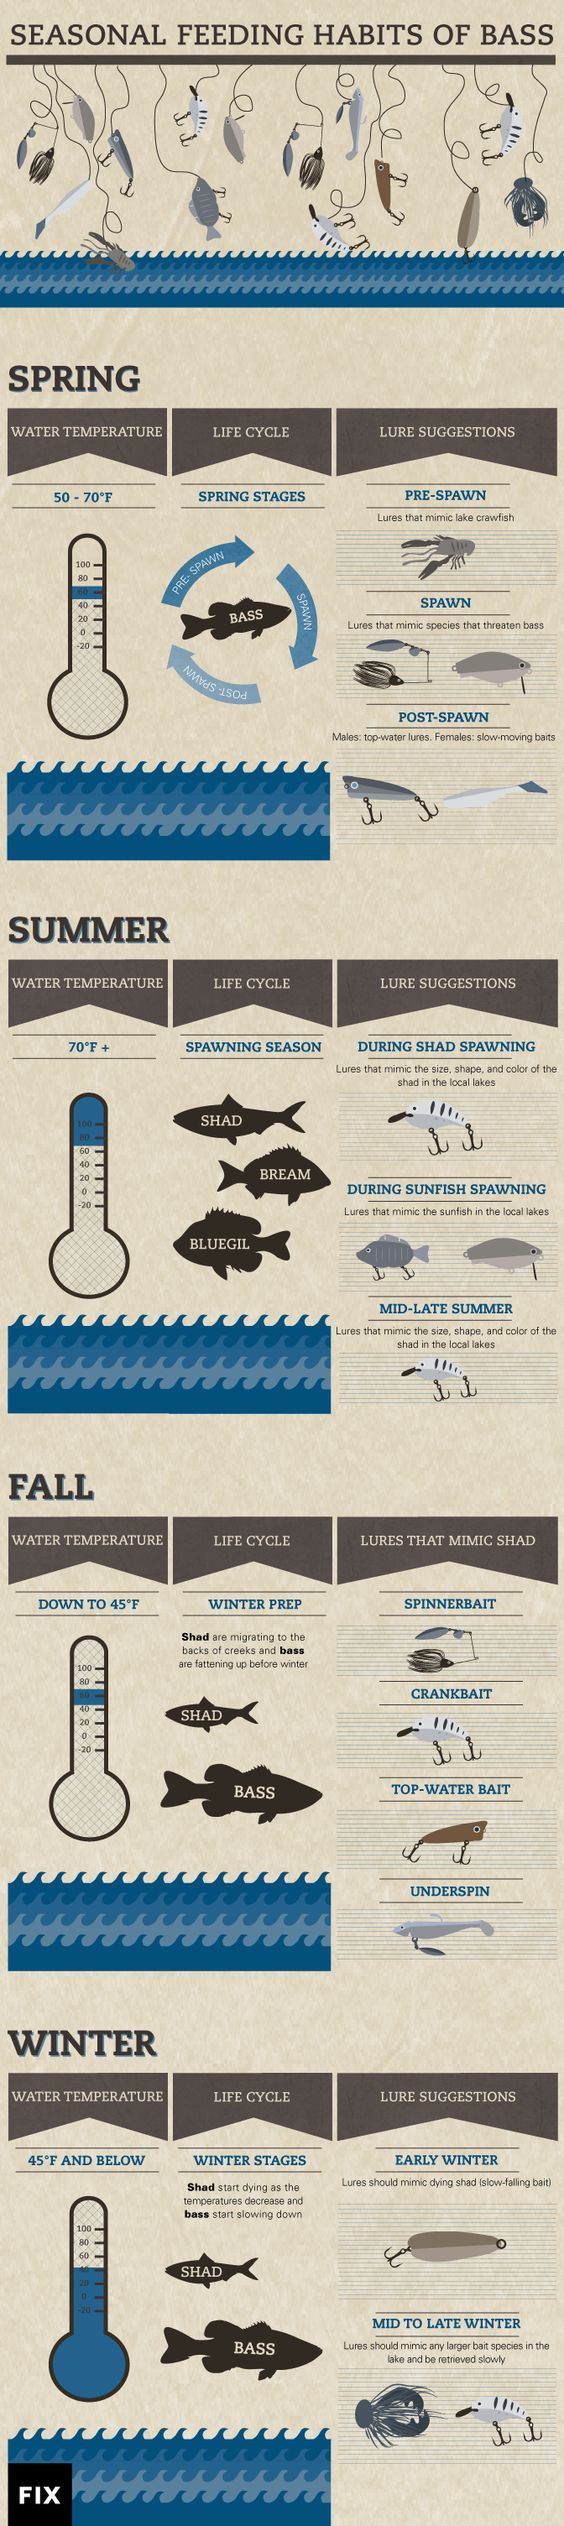 Best 25 bass fishing pictures ideas on pinterest bass for Fall bass fishing tips